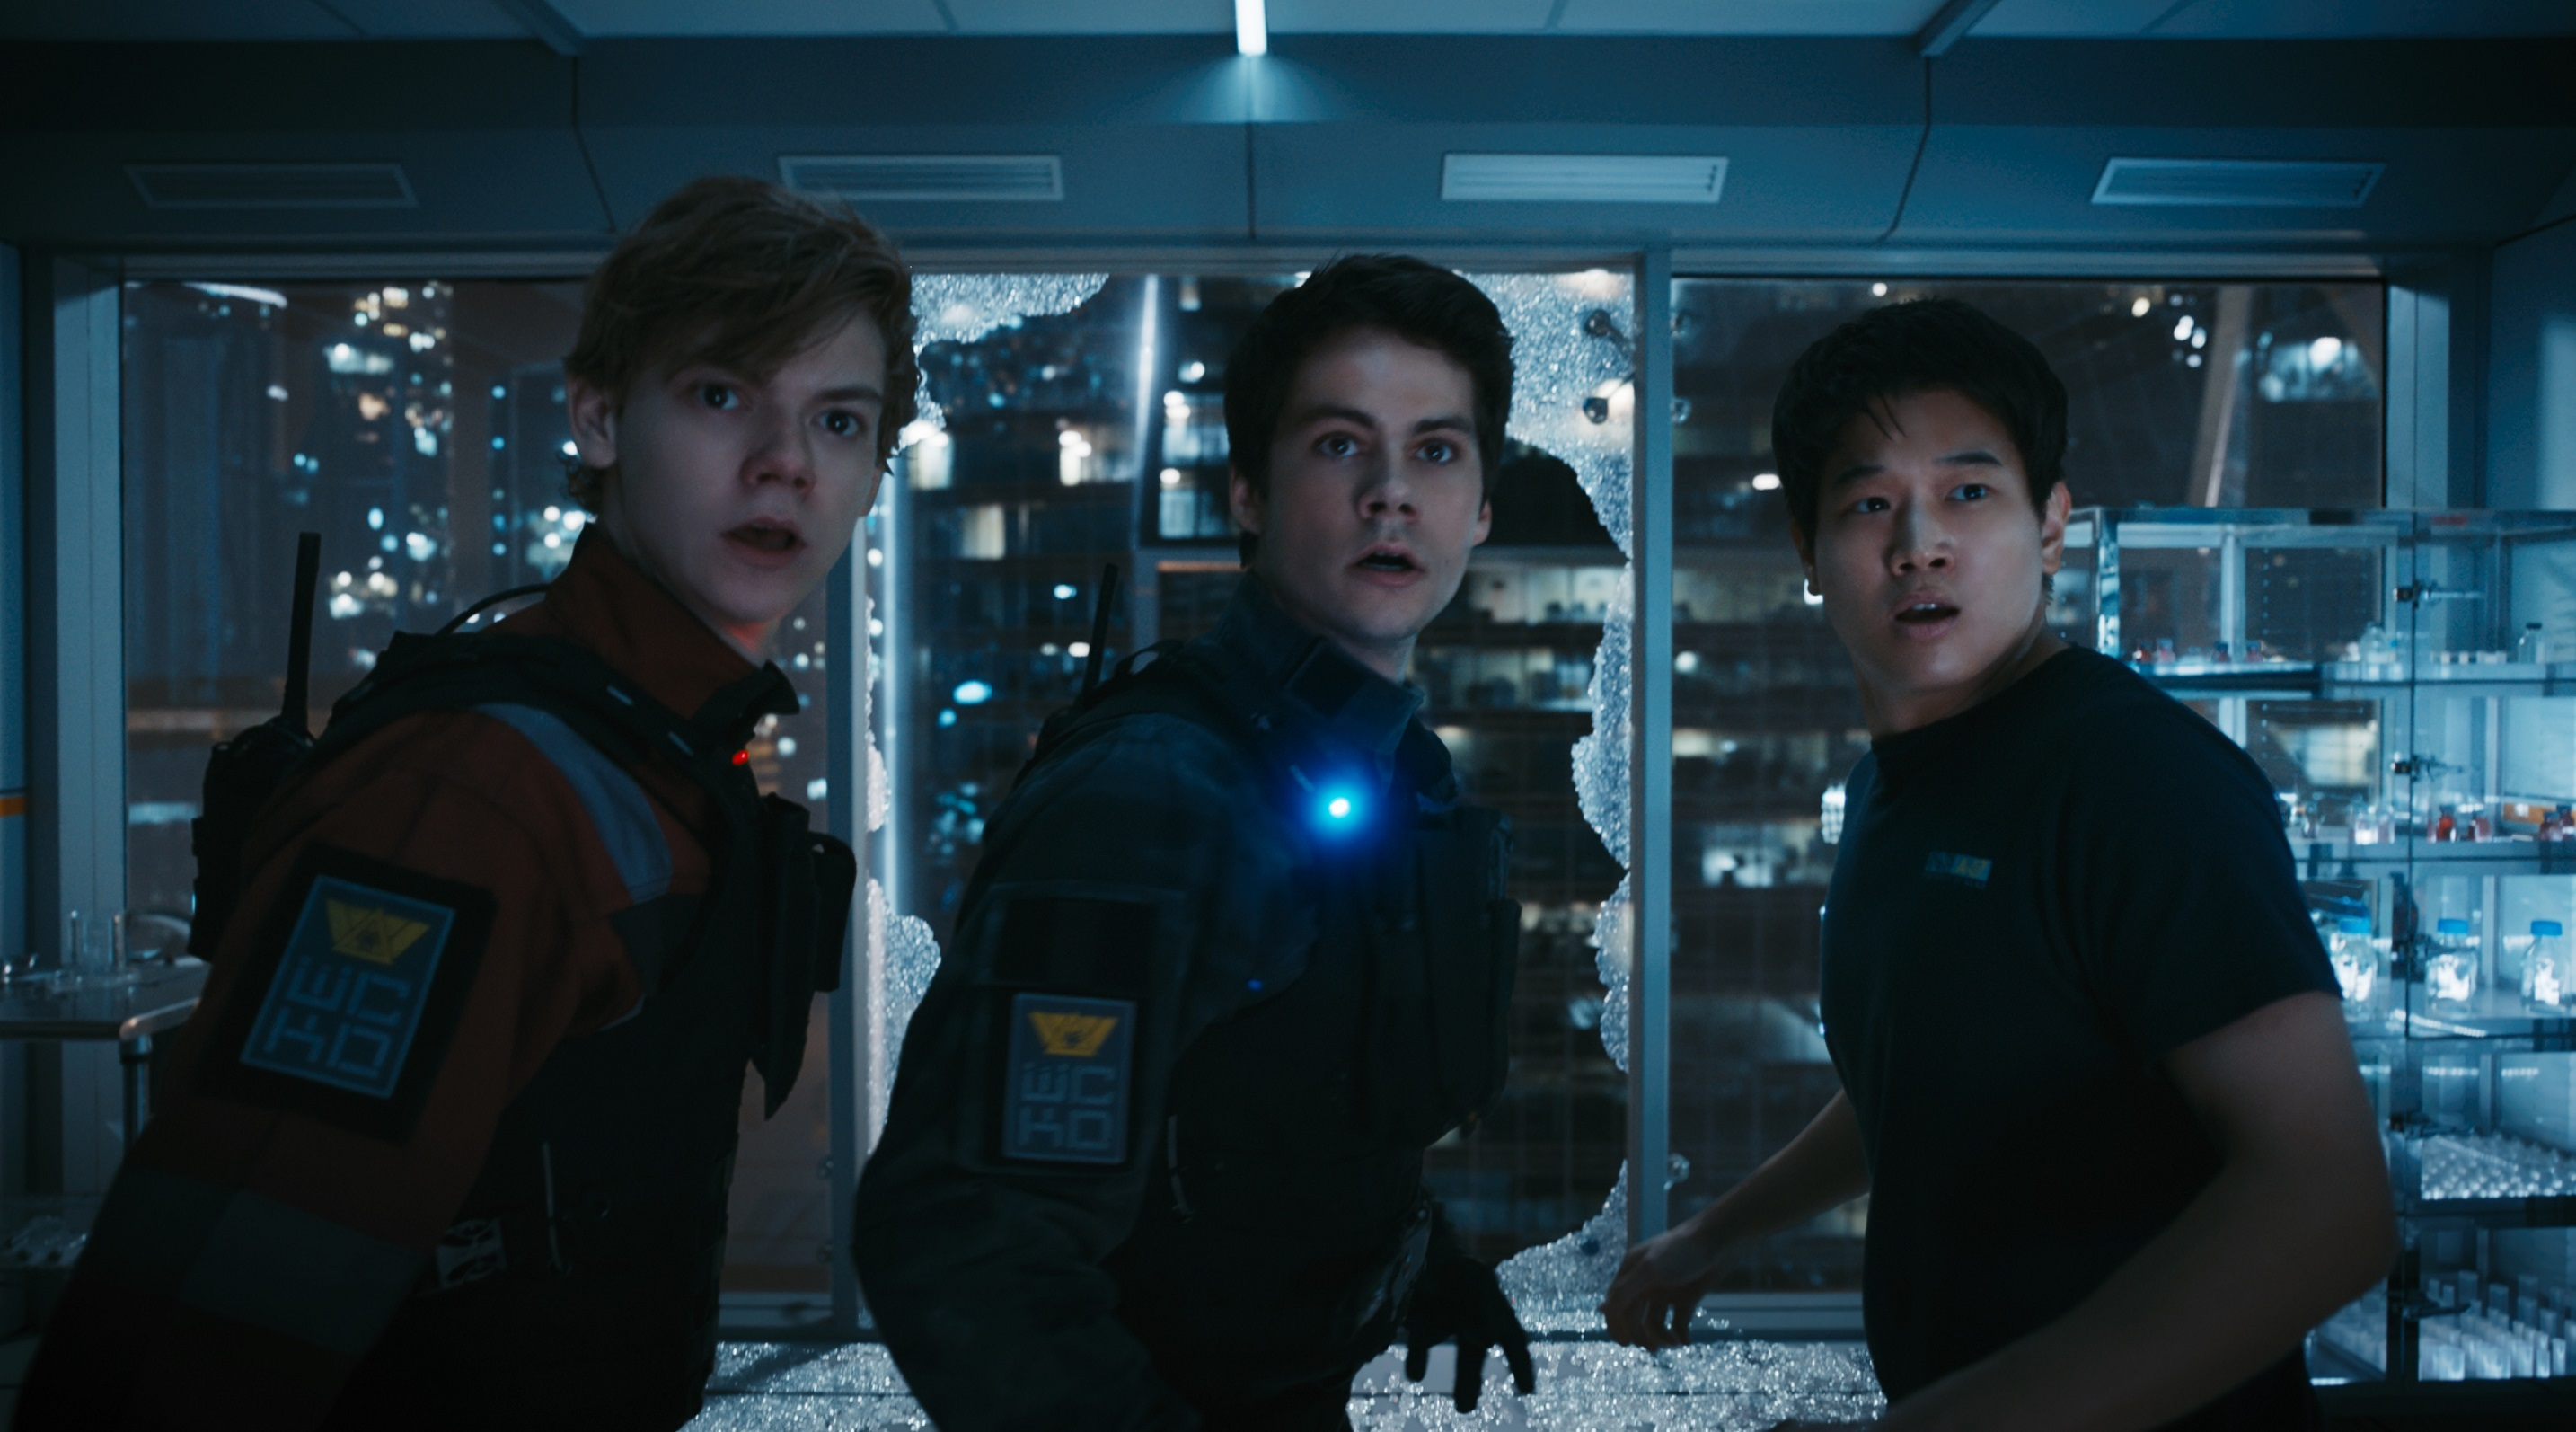 brodie-sangster, o'brien and ki hong lee in MAZE RUNNER THE DEATH CURE